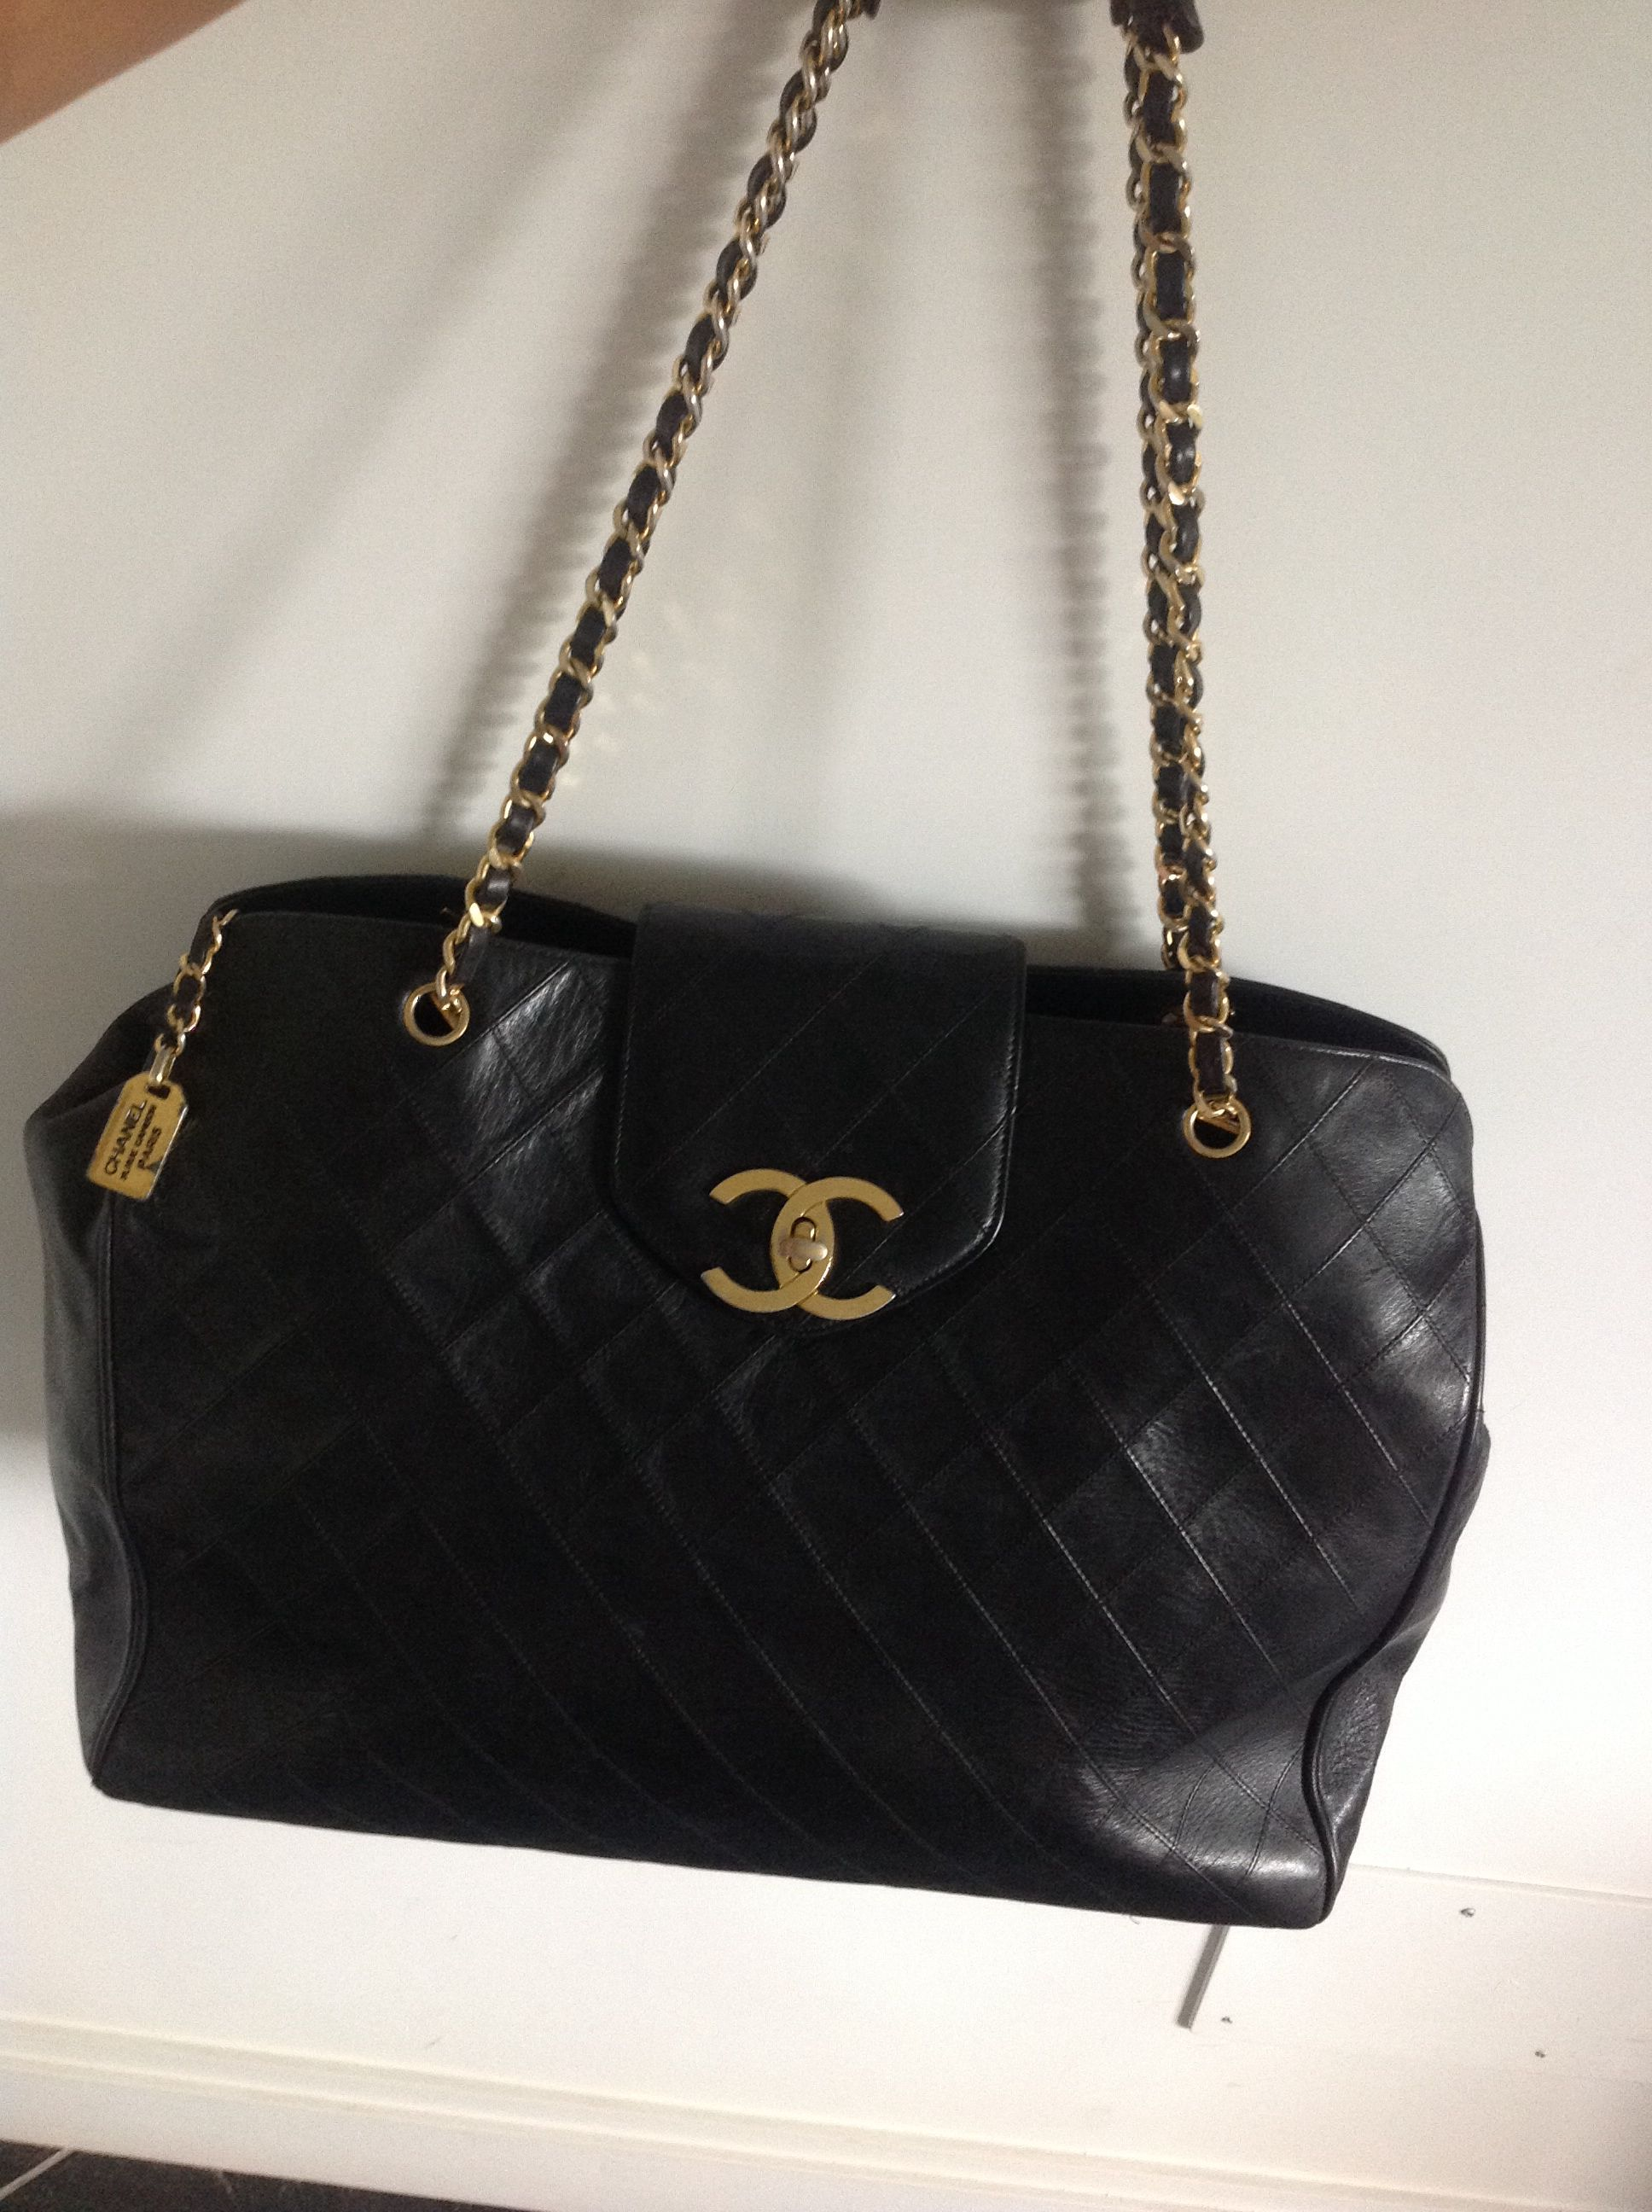 9d8a3a804 Vintage Chanel overnight bag, black diamond quilted lambskin with gold hdw  perfect for a weekend